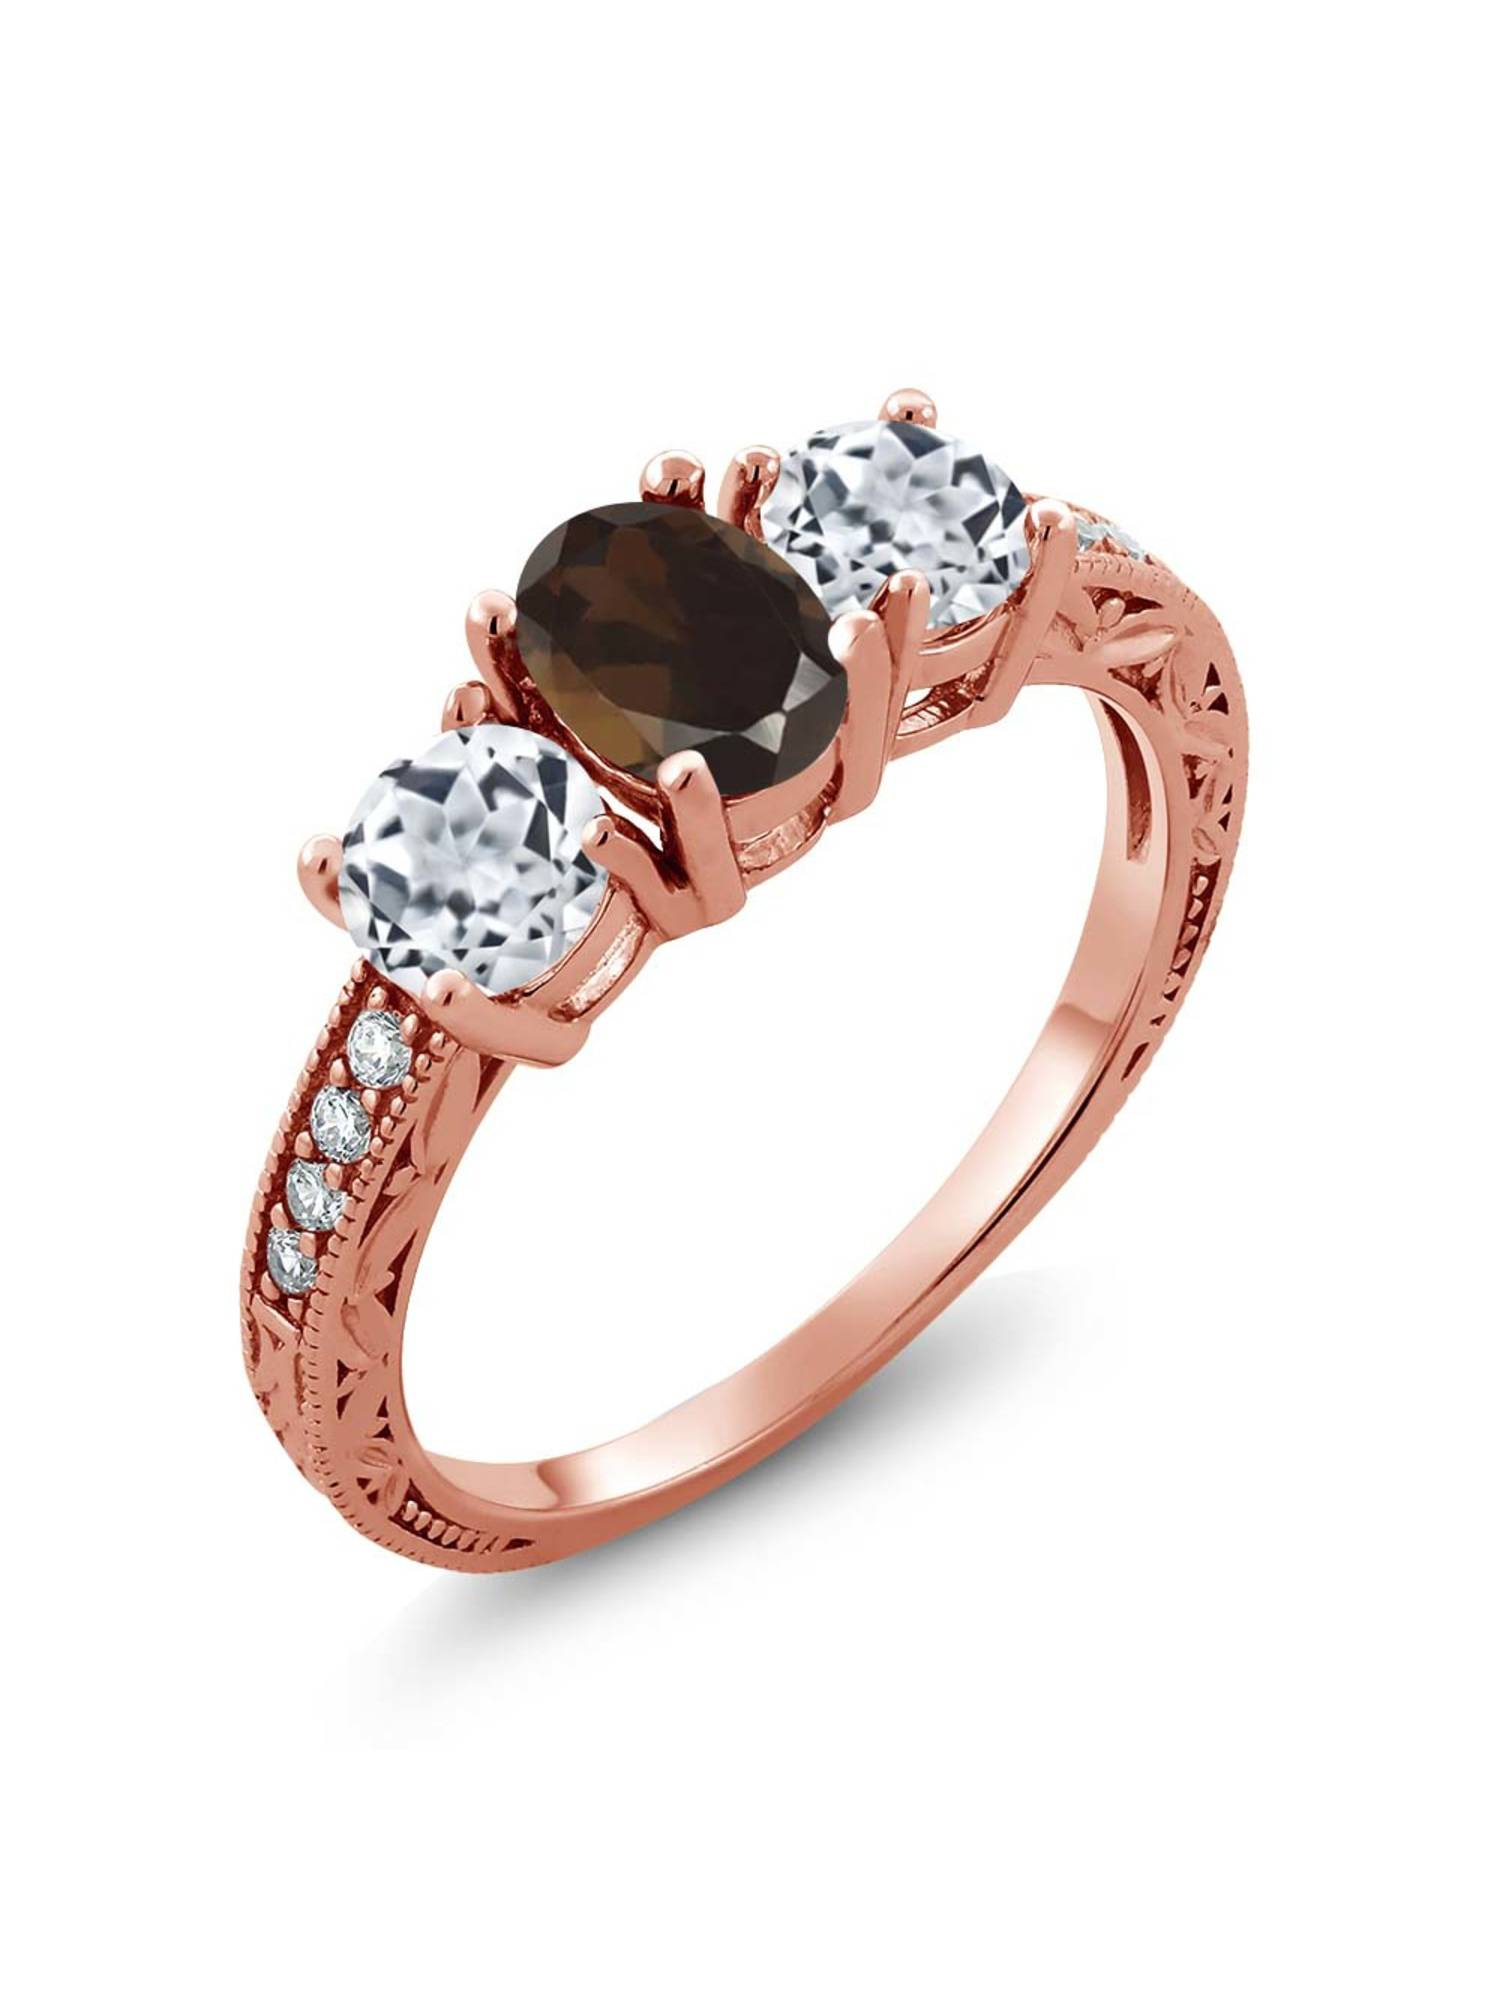 Gem Stone King 1.87 Ct Oval Brown Smoky Quartz White Topaz 18K Rose Gold Plated Silver Ring